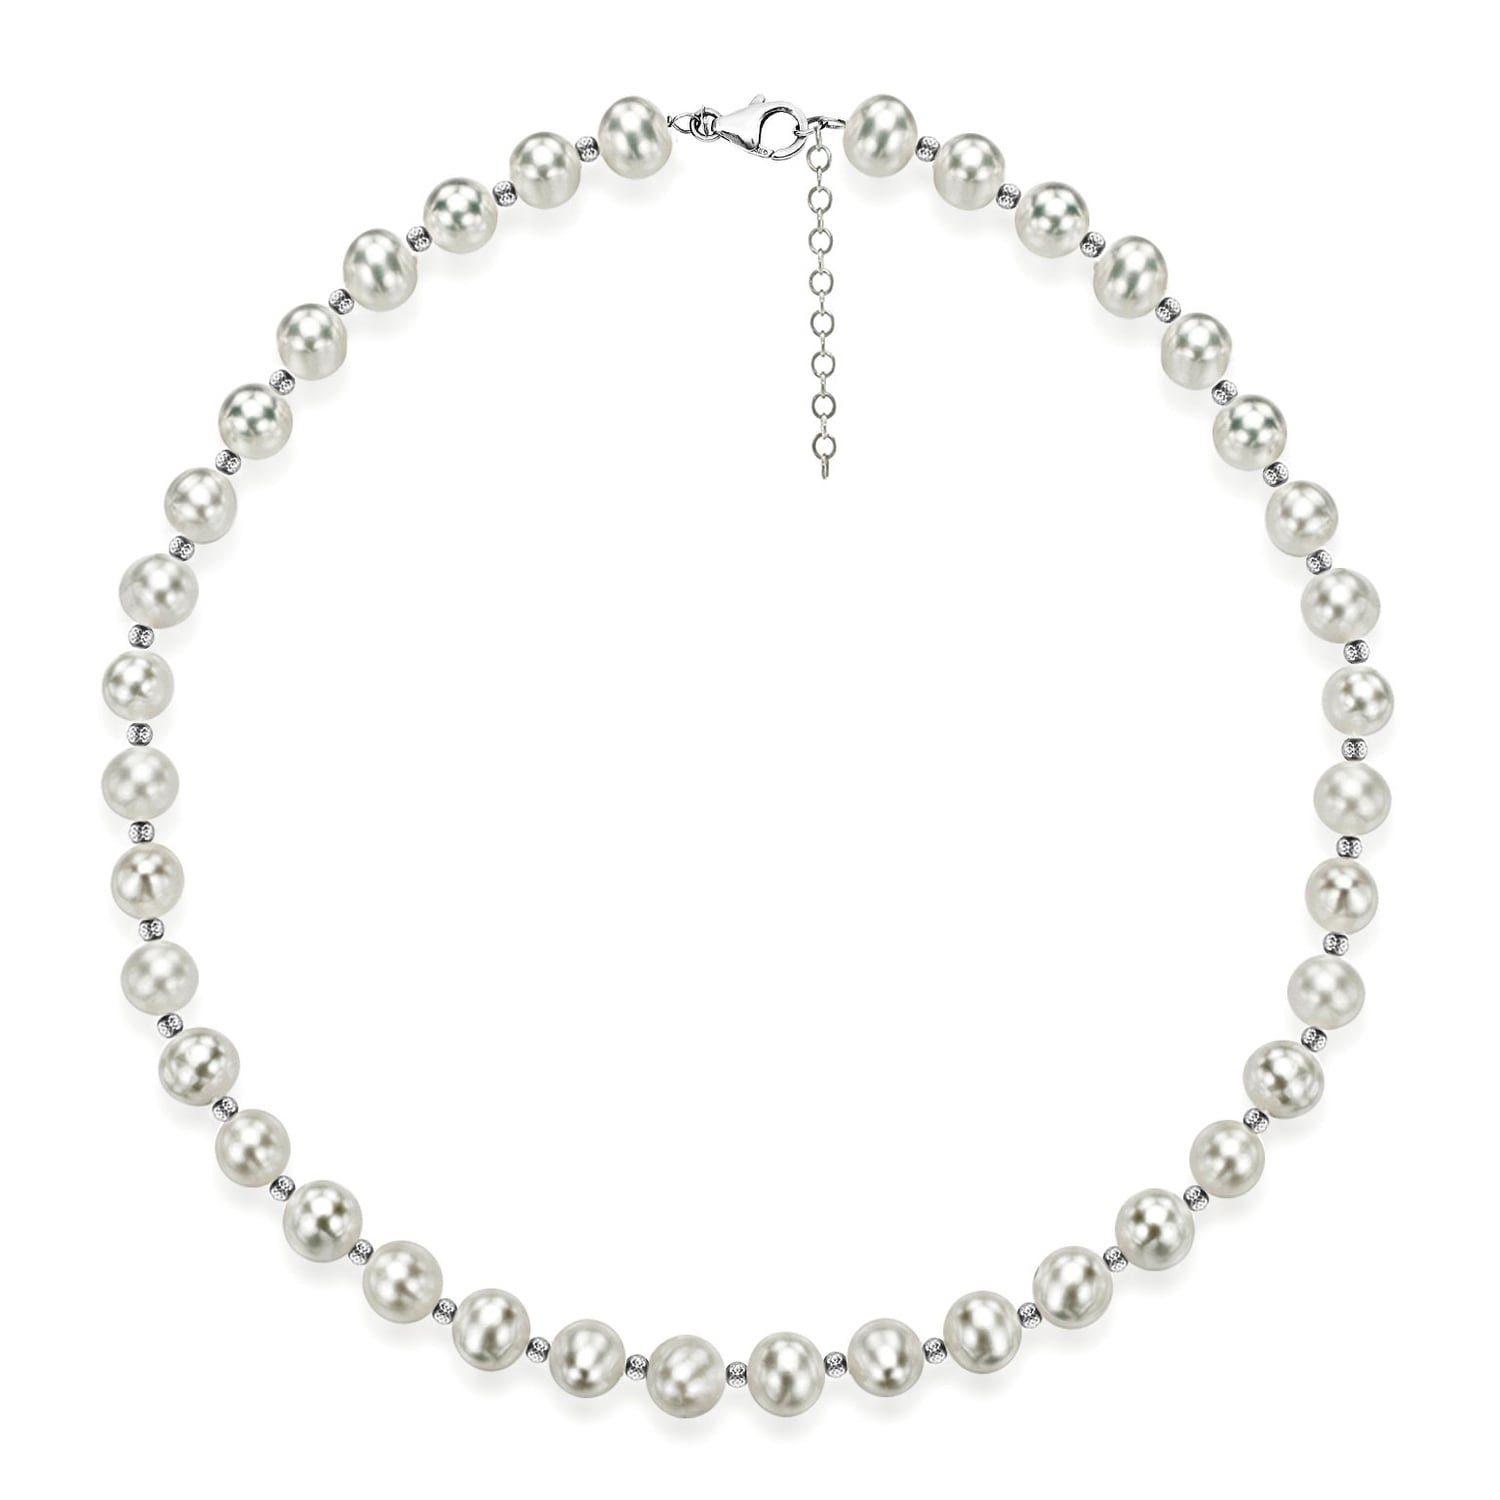 925 Sterling Silver Multi-color Freshwater Cultured Pearl Necklace in Silver Choice of Lengths 18 and 7-8mm 8-9mm